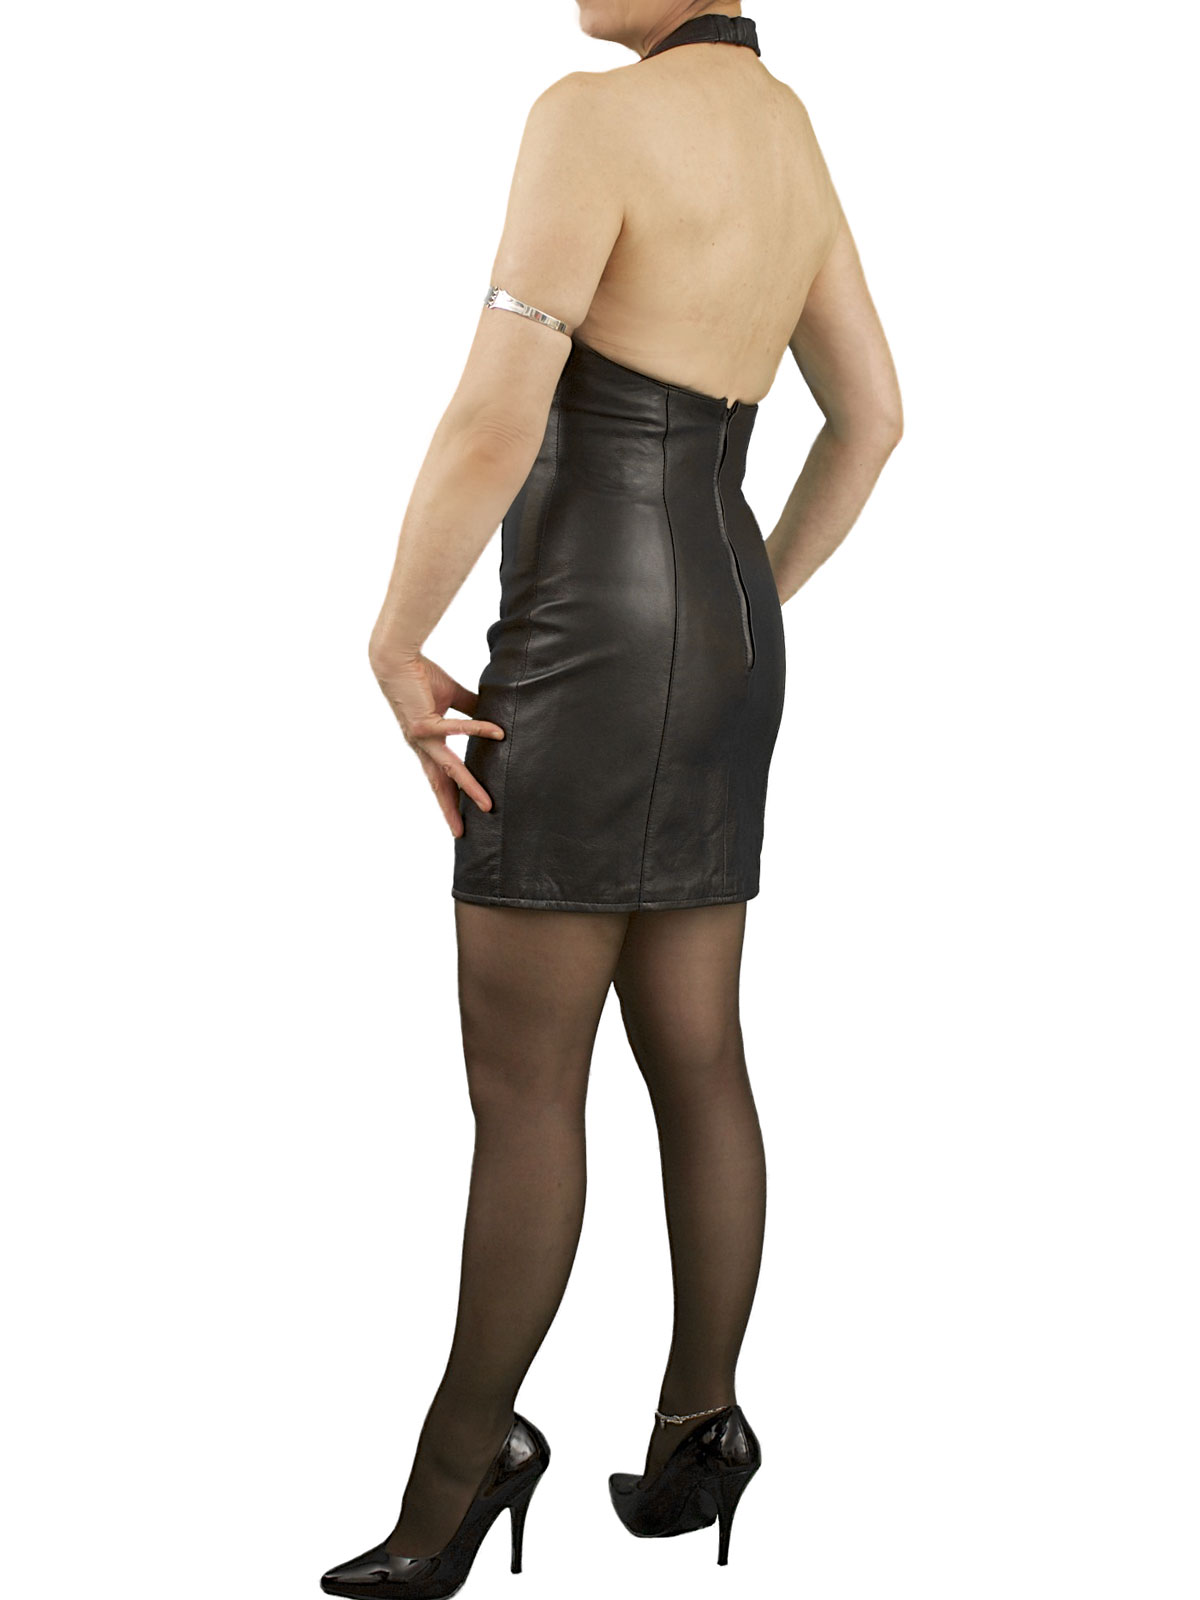 Black Halterneck Leather Dress